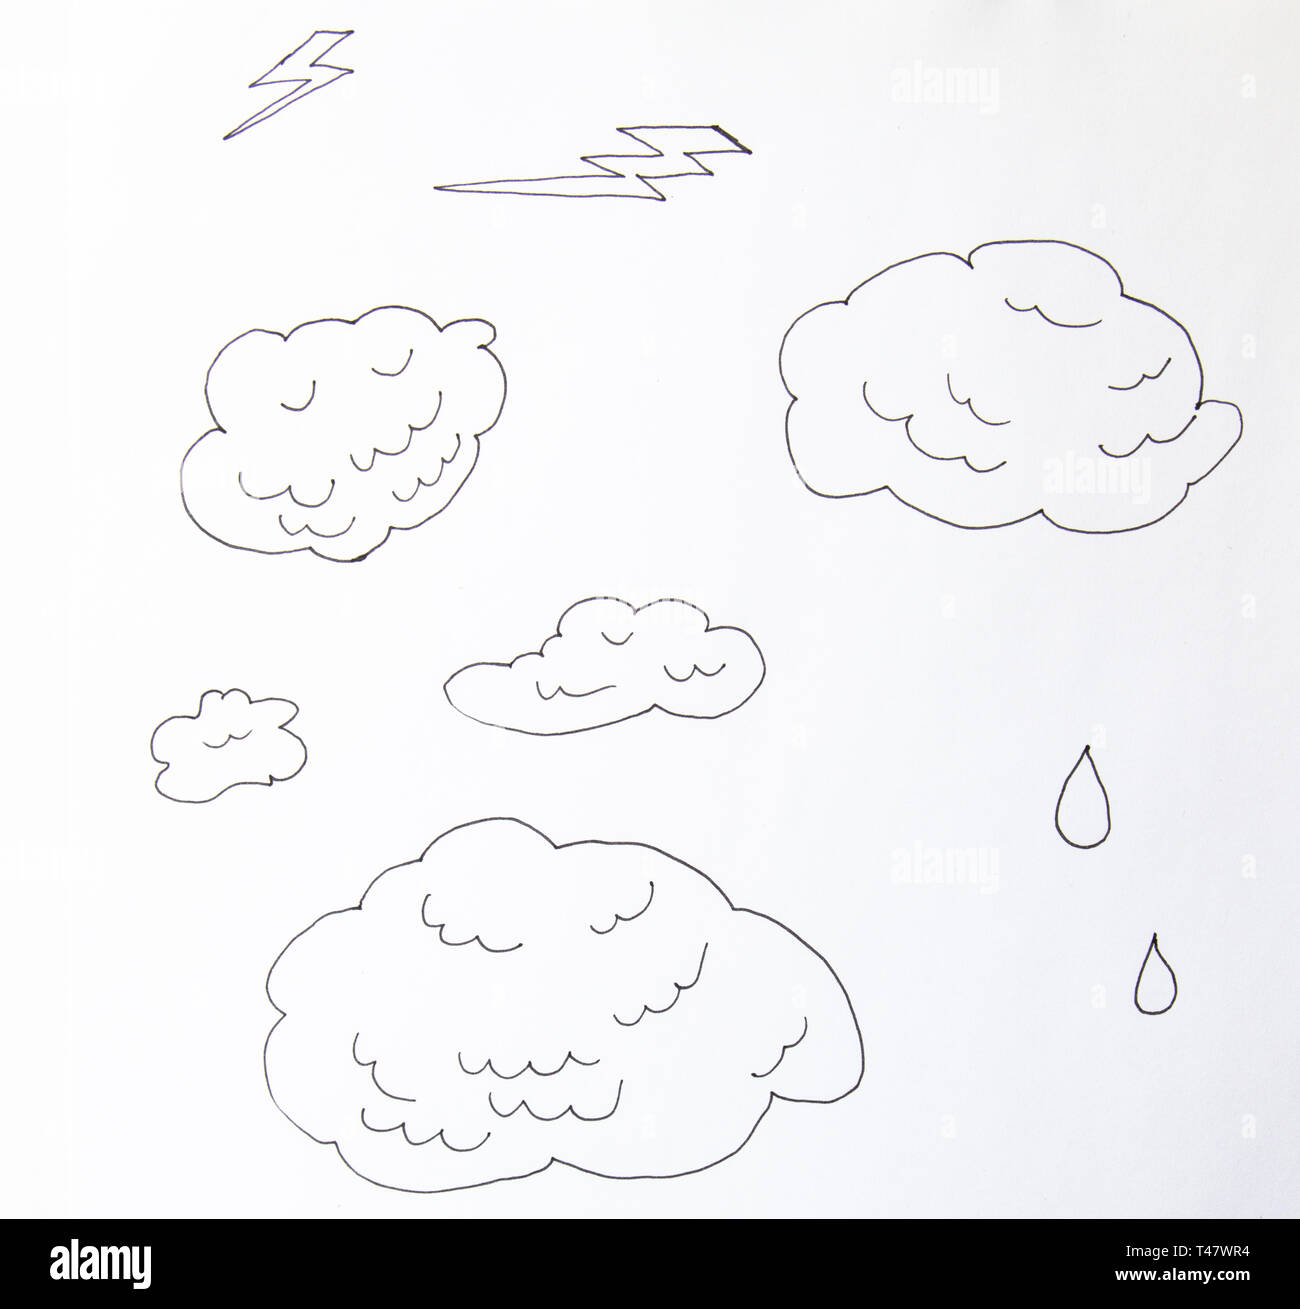 Clouds line art icon. Storage solution element, databases, networking, software image, cloud and meteorology concept. line art illustration isolated o - Stock Image